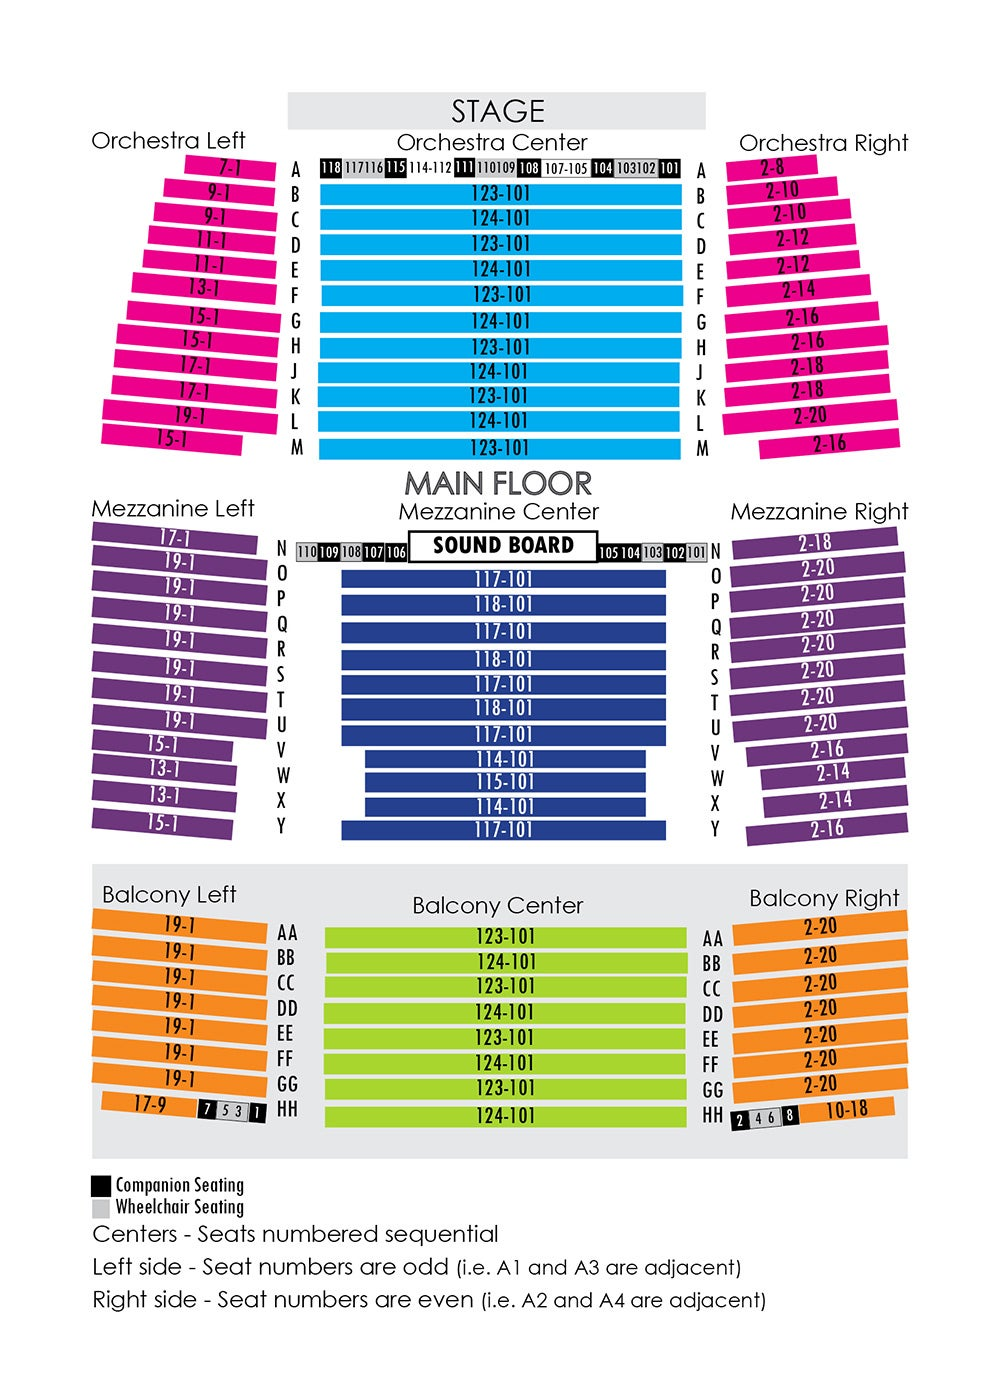 House Seating Chart Niswonger Performing Arts Center